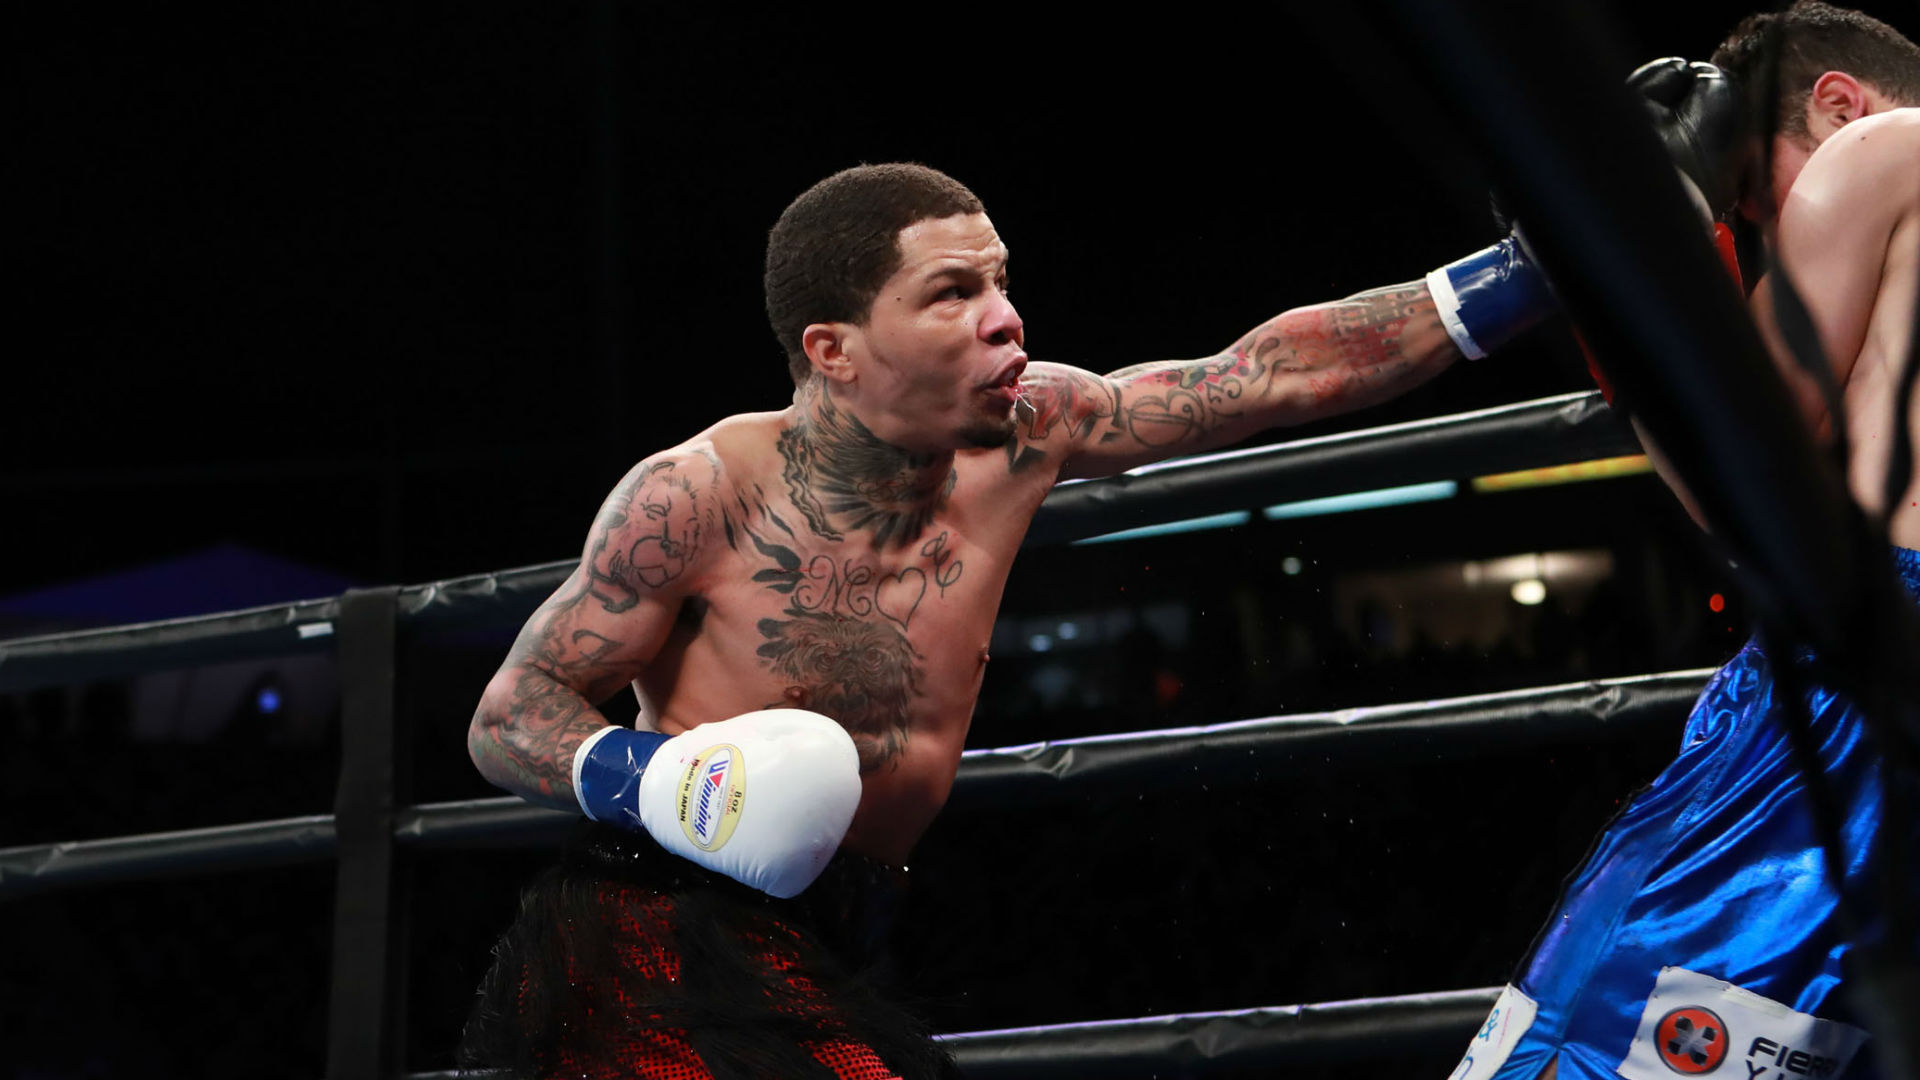 Gervonta Davis officially vacates WBA super featherweight title, moves up to lightweight